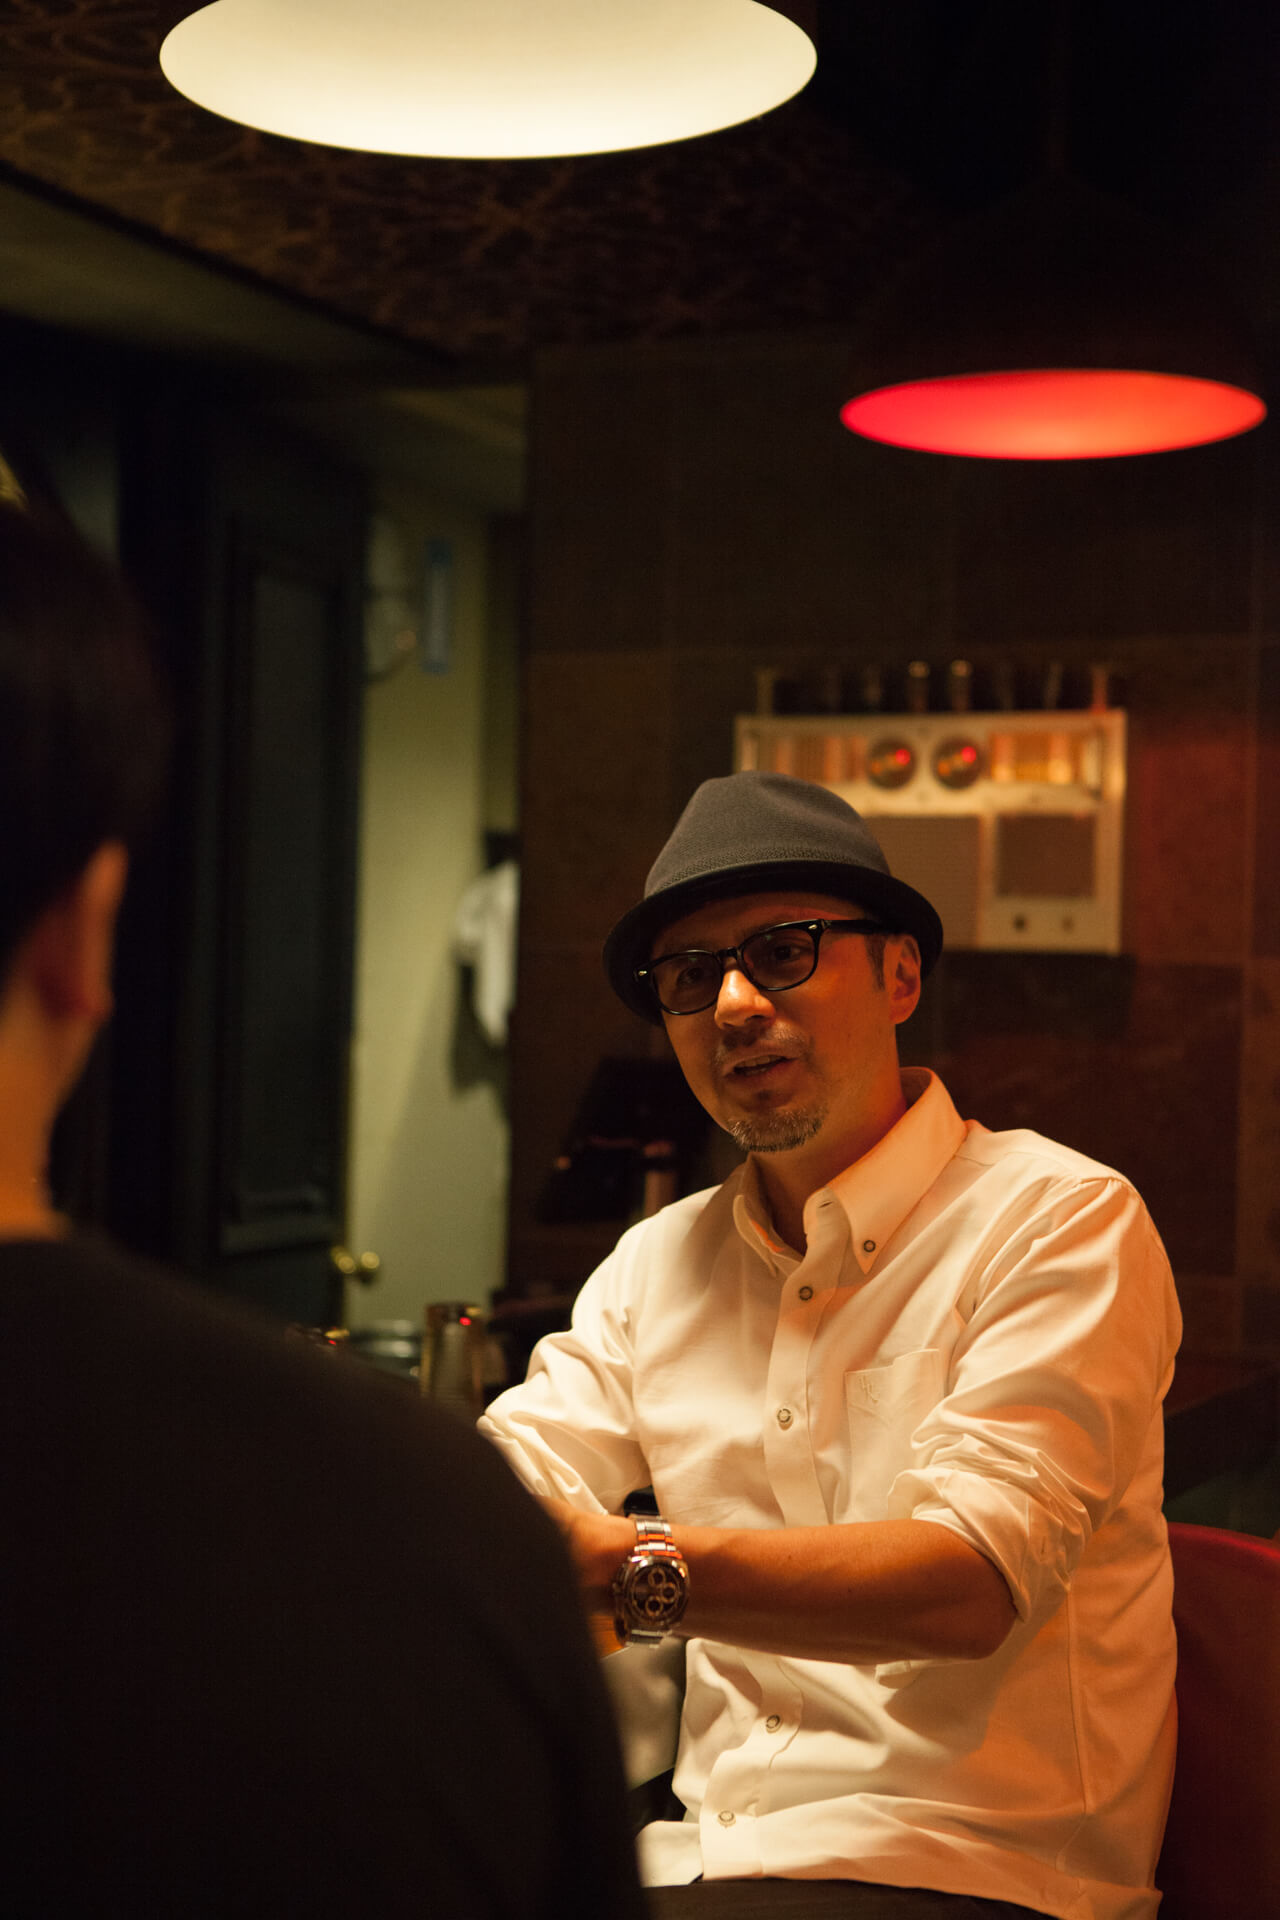 (Photo by Kohichi Ogasahara)